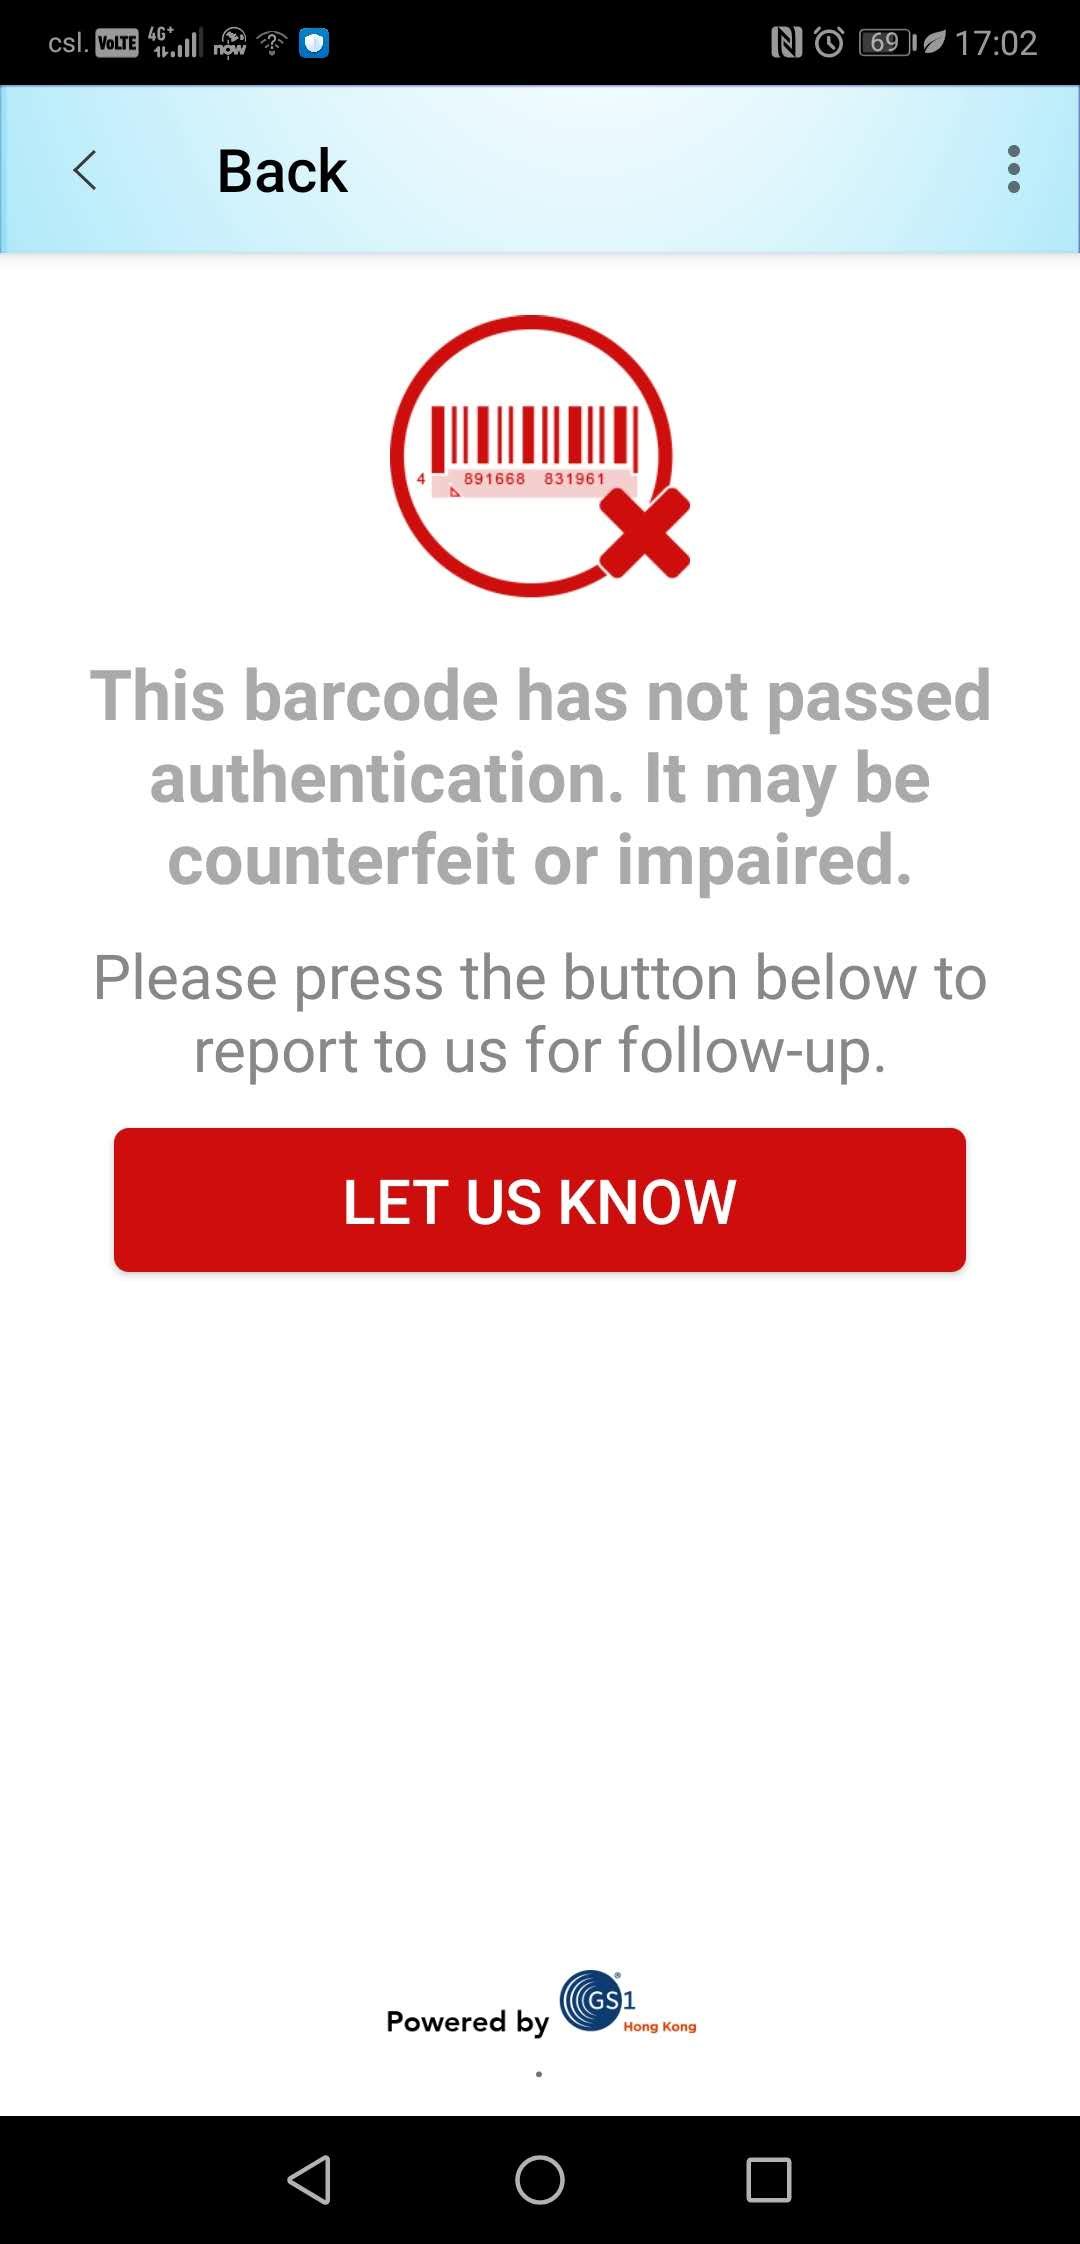 REAL Barcode app can detect fake items immediately after scanning (right image), and consumers can notify the brand via email. At the same time, brand owners will be alerted and receive the location and other information of the counterfeits.